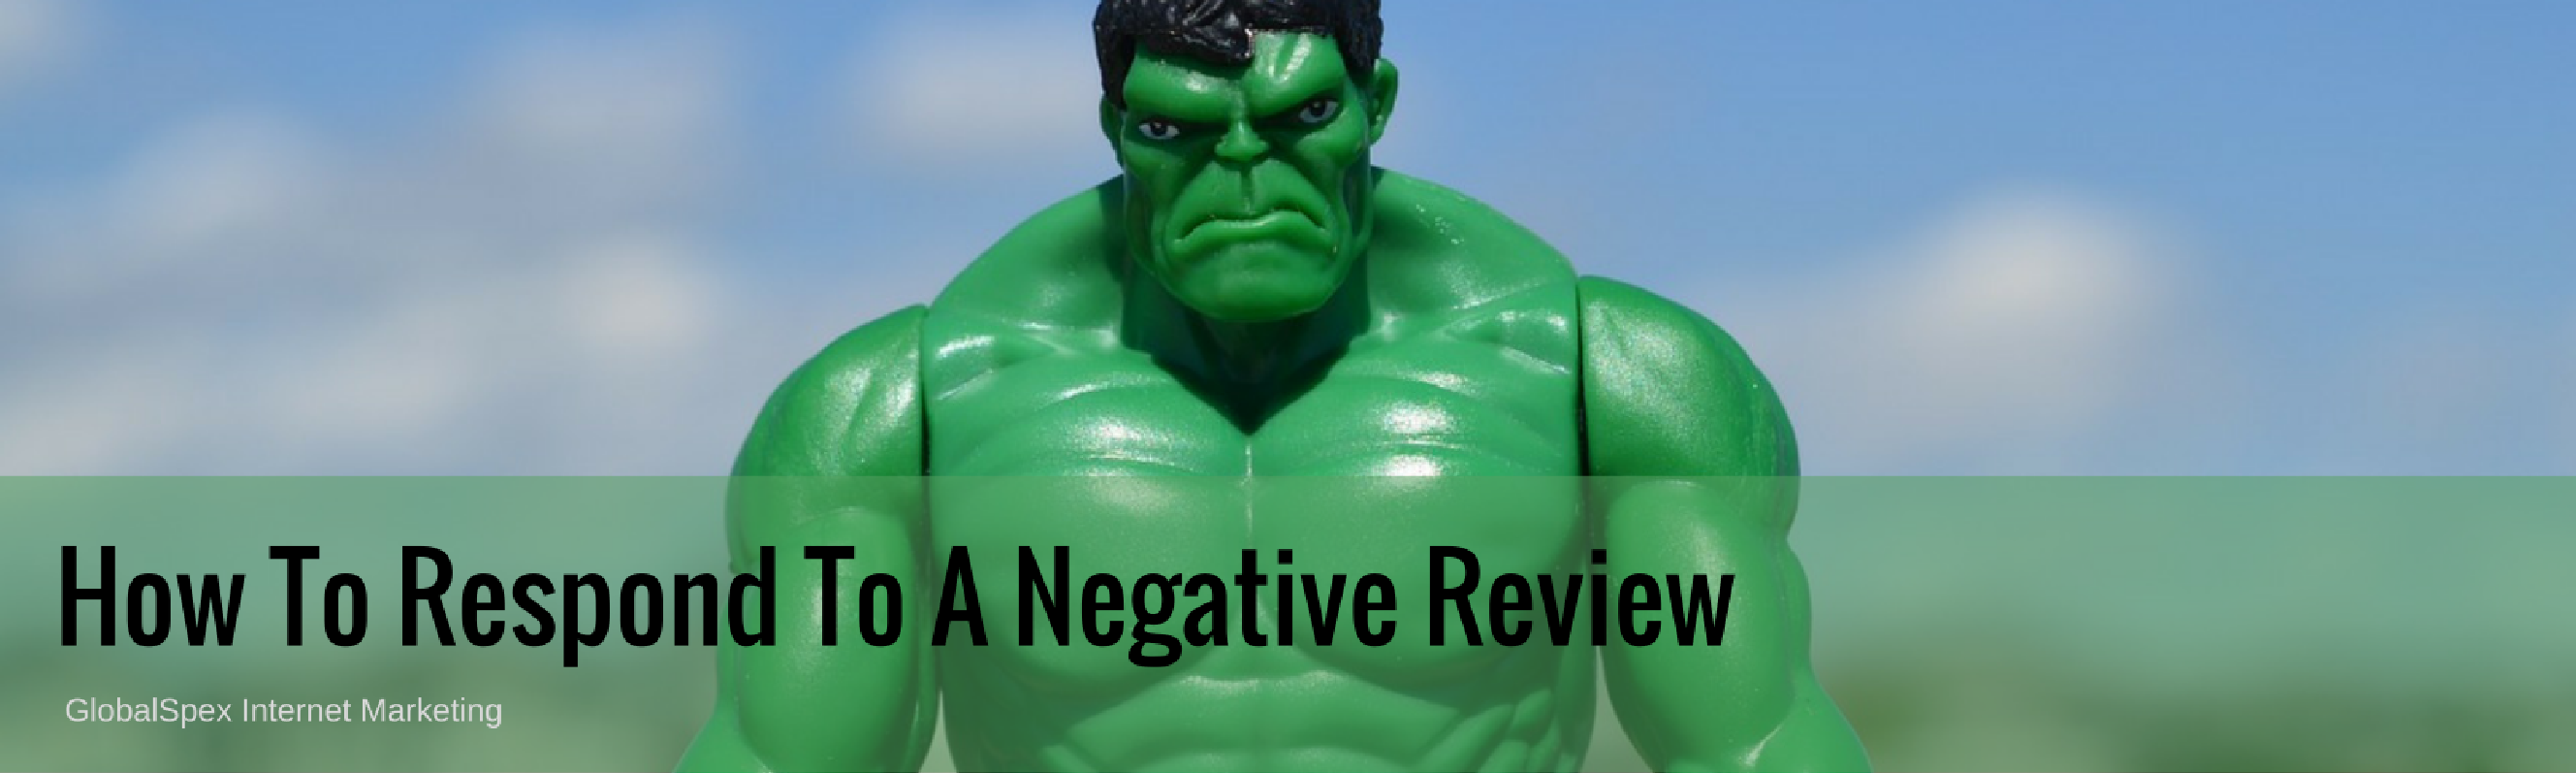 How To Respond To A Negative Online Review  Globalspex Internet Marketing